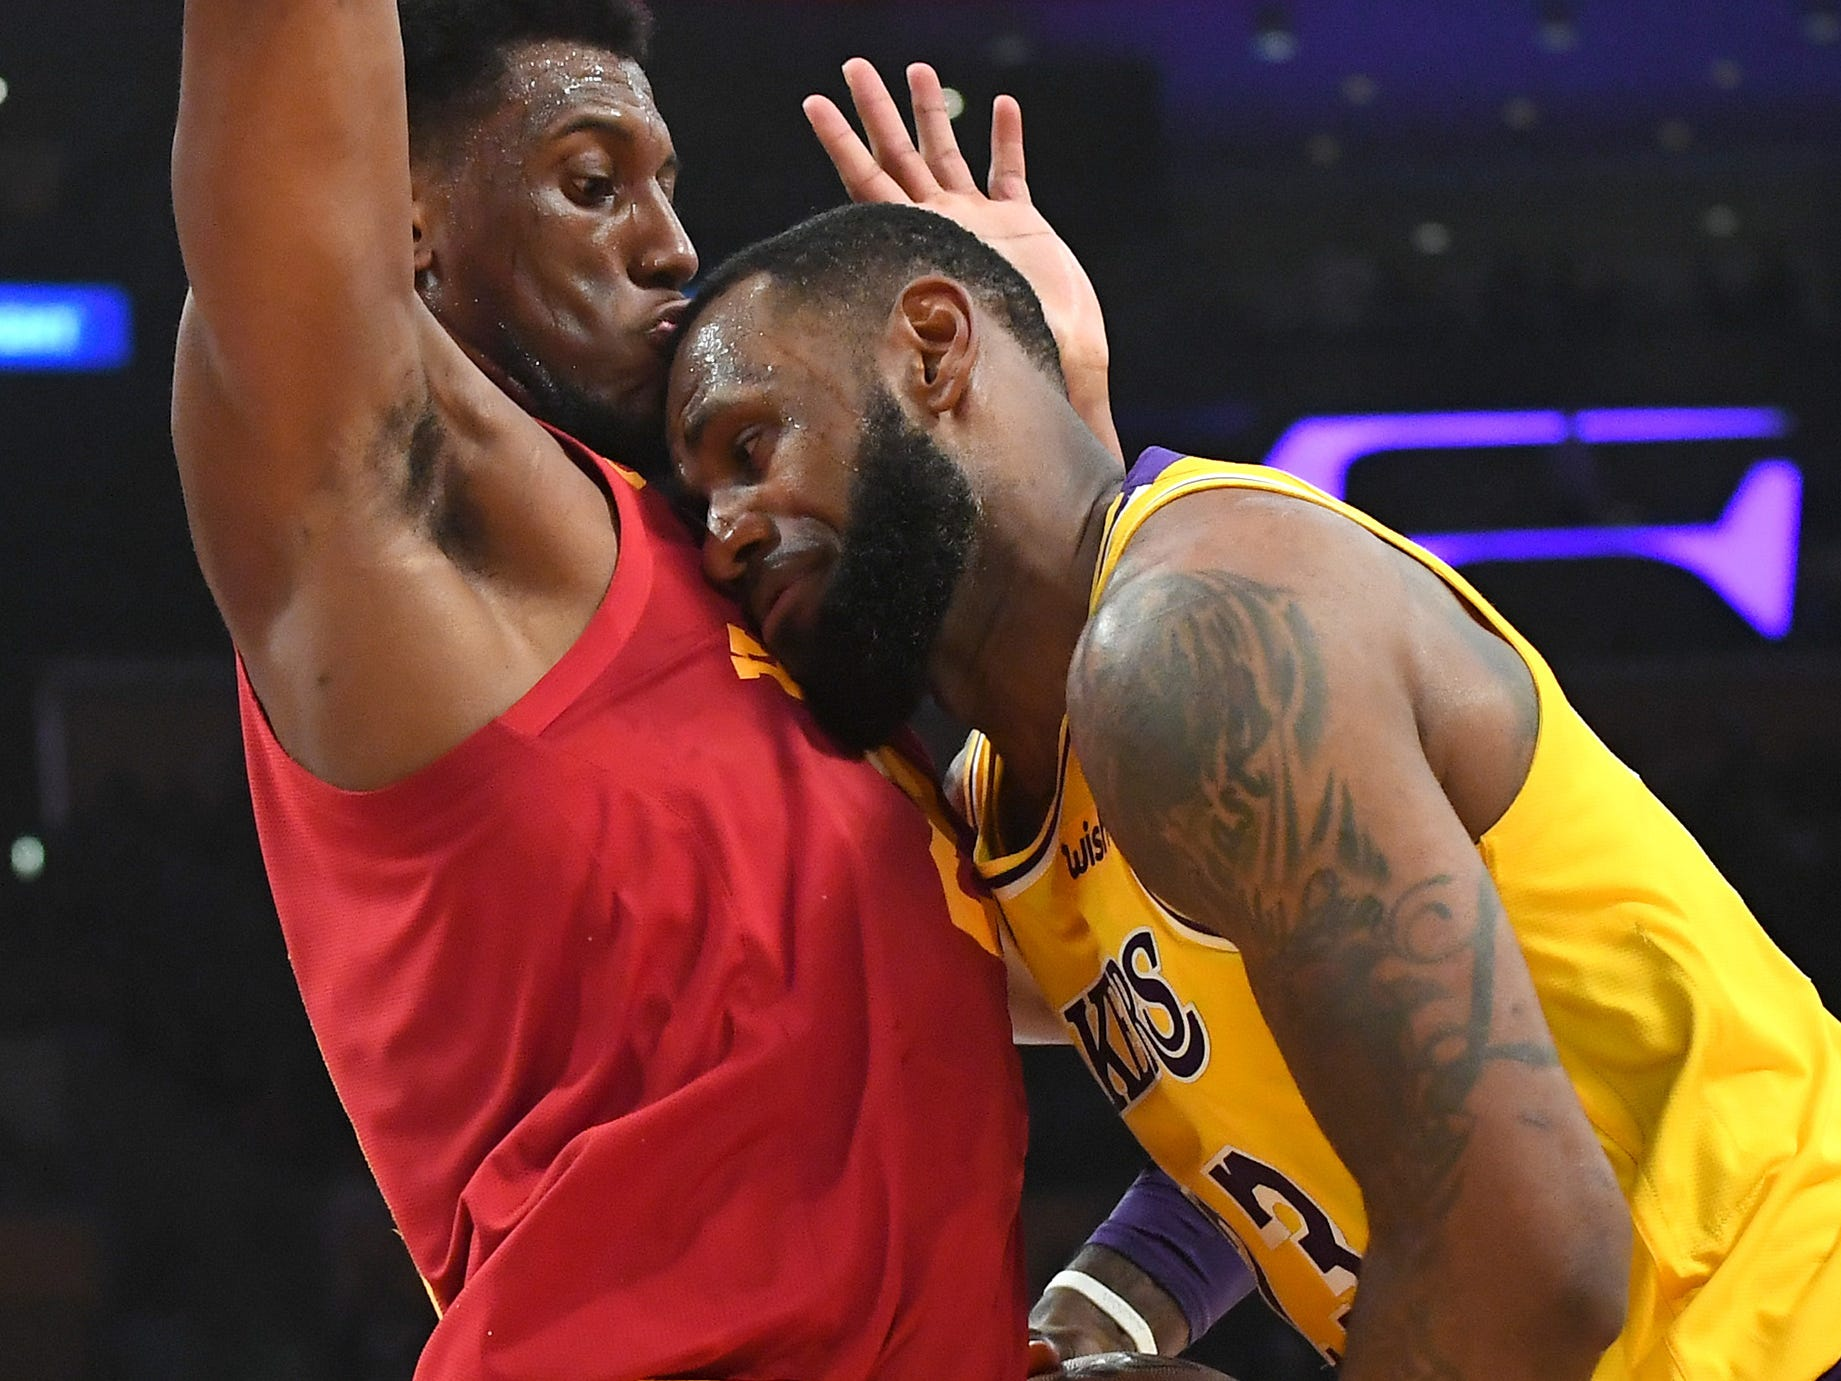 Nov. 29: Lakers forward LeBron James collides face-first with Pacers forward Thaddeus Young's chest during the second half in Los Angeles.